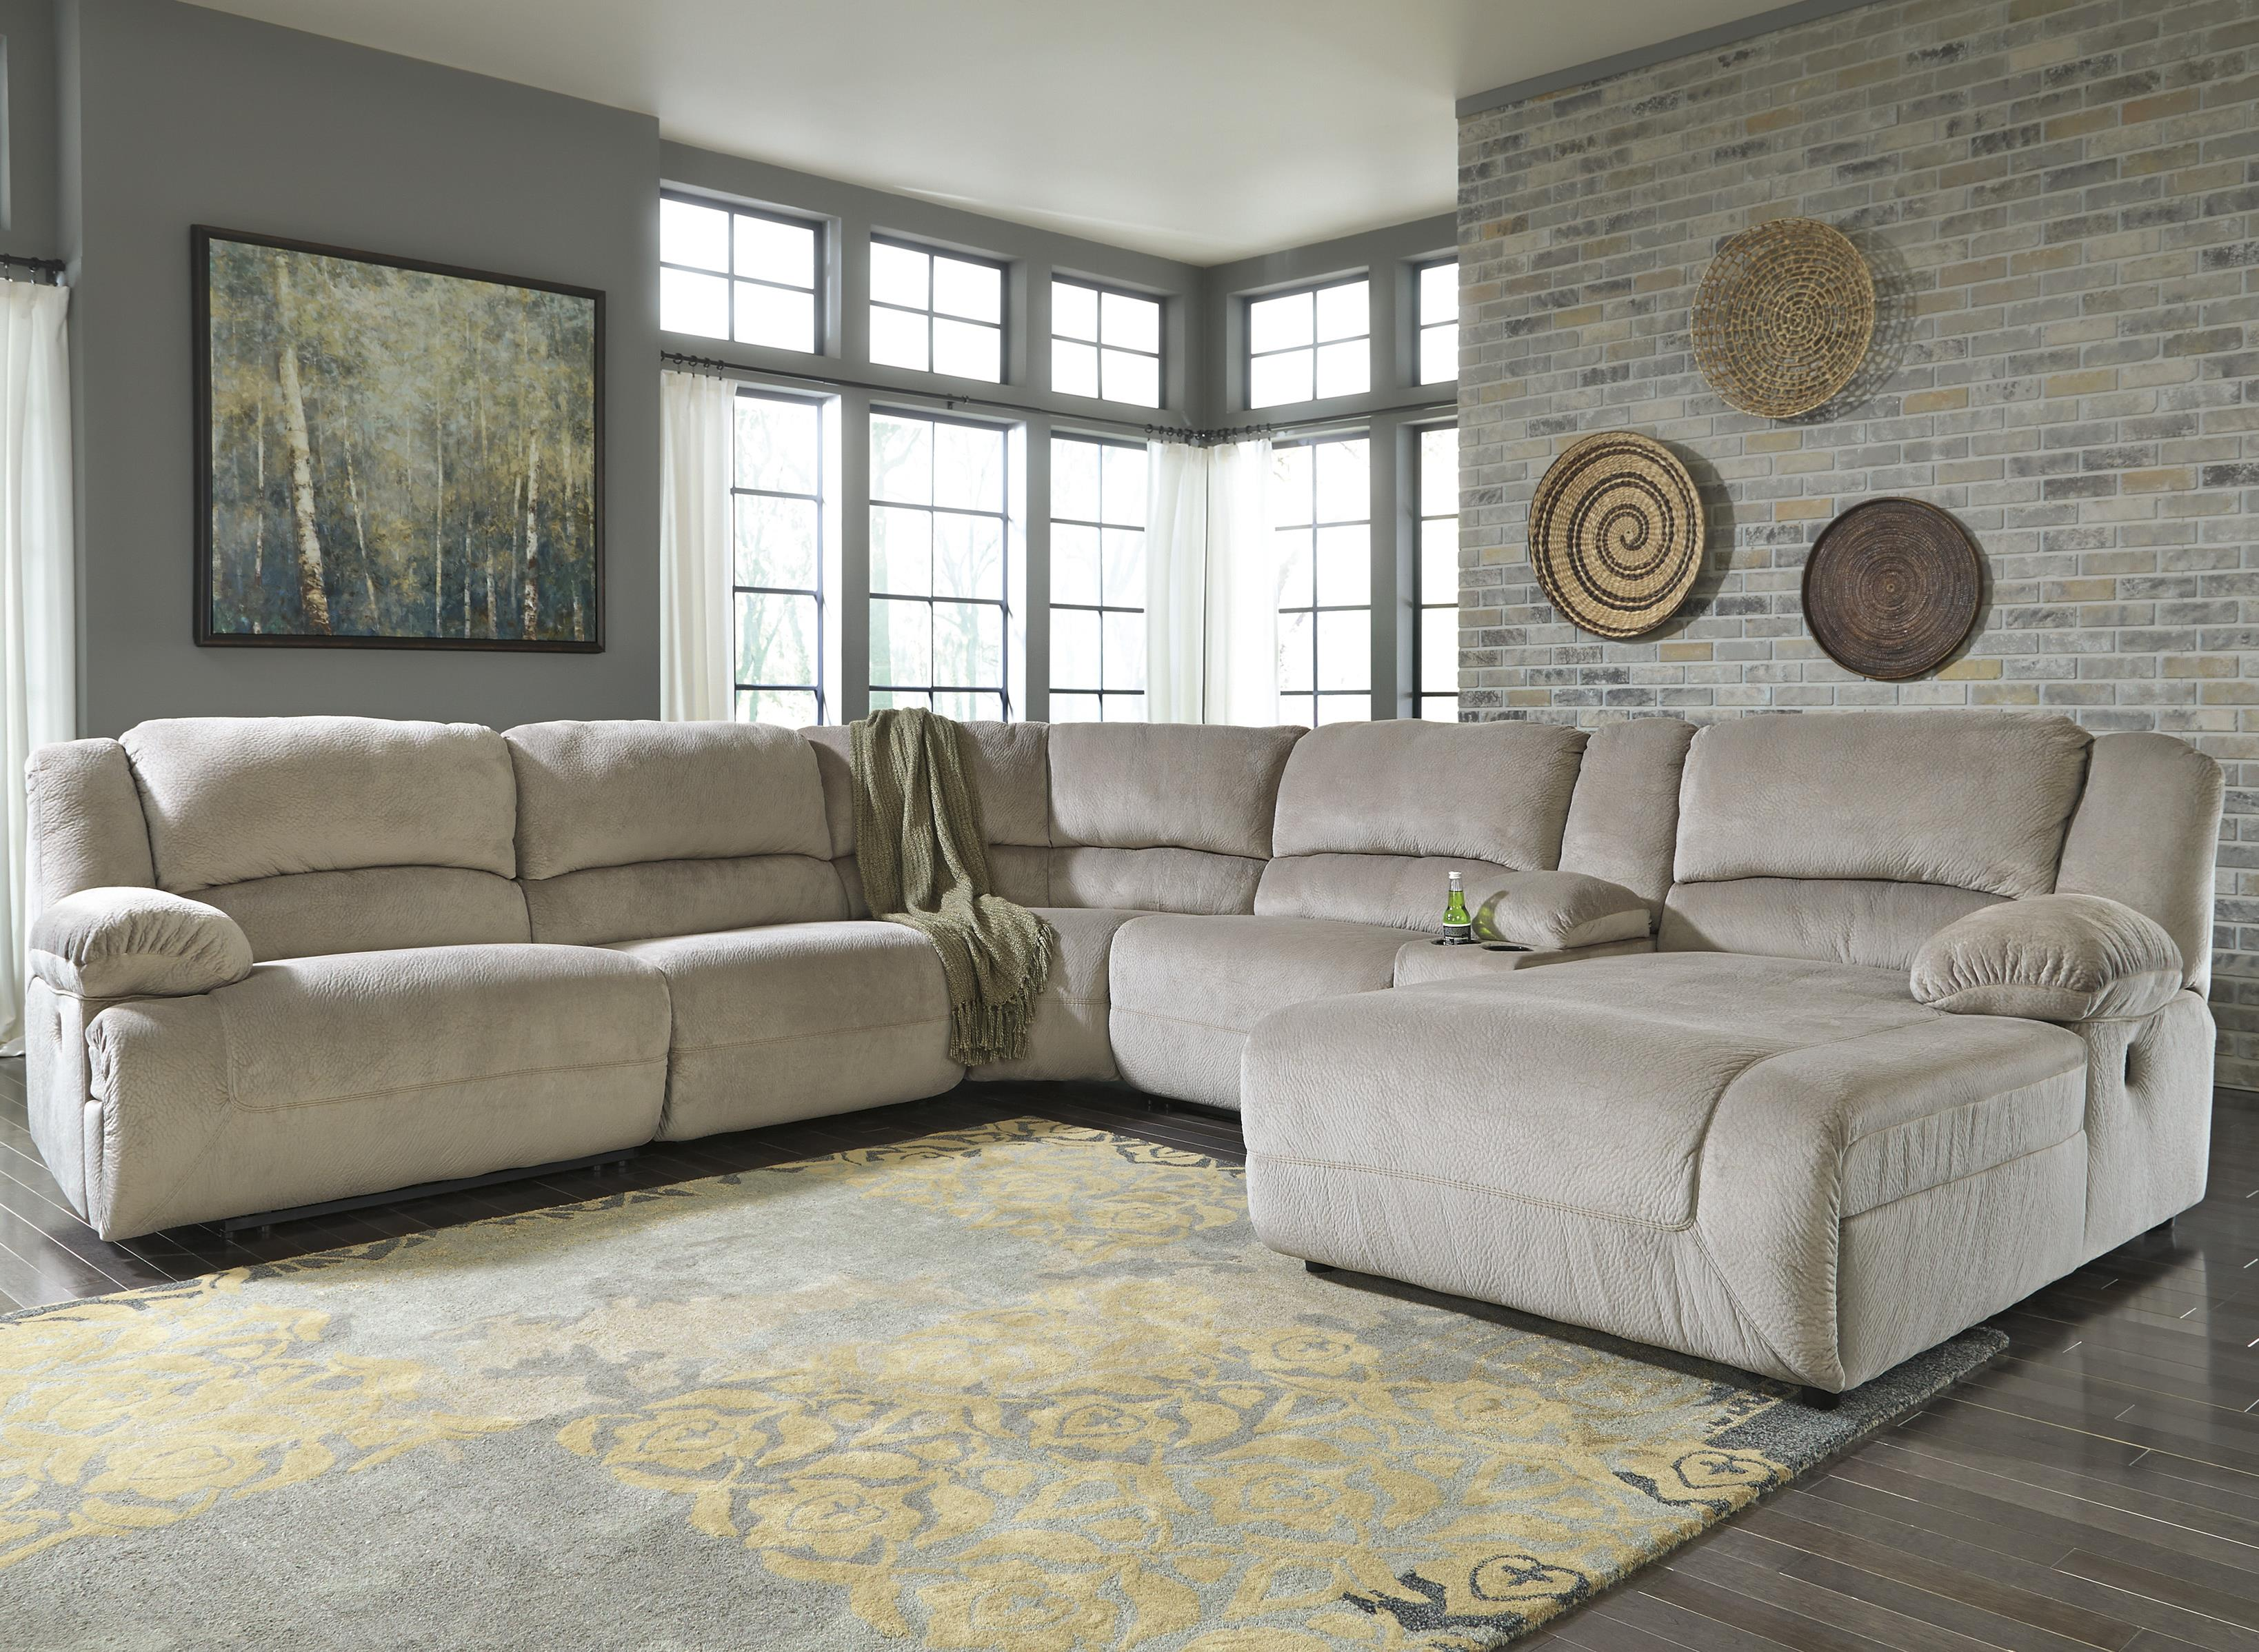 Signature Design by Ashley Toletta - Granite Power Recl. Sectional w/ Console & Chaise - Item Number: 5670358+19+77+46+57+97